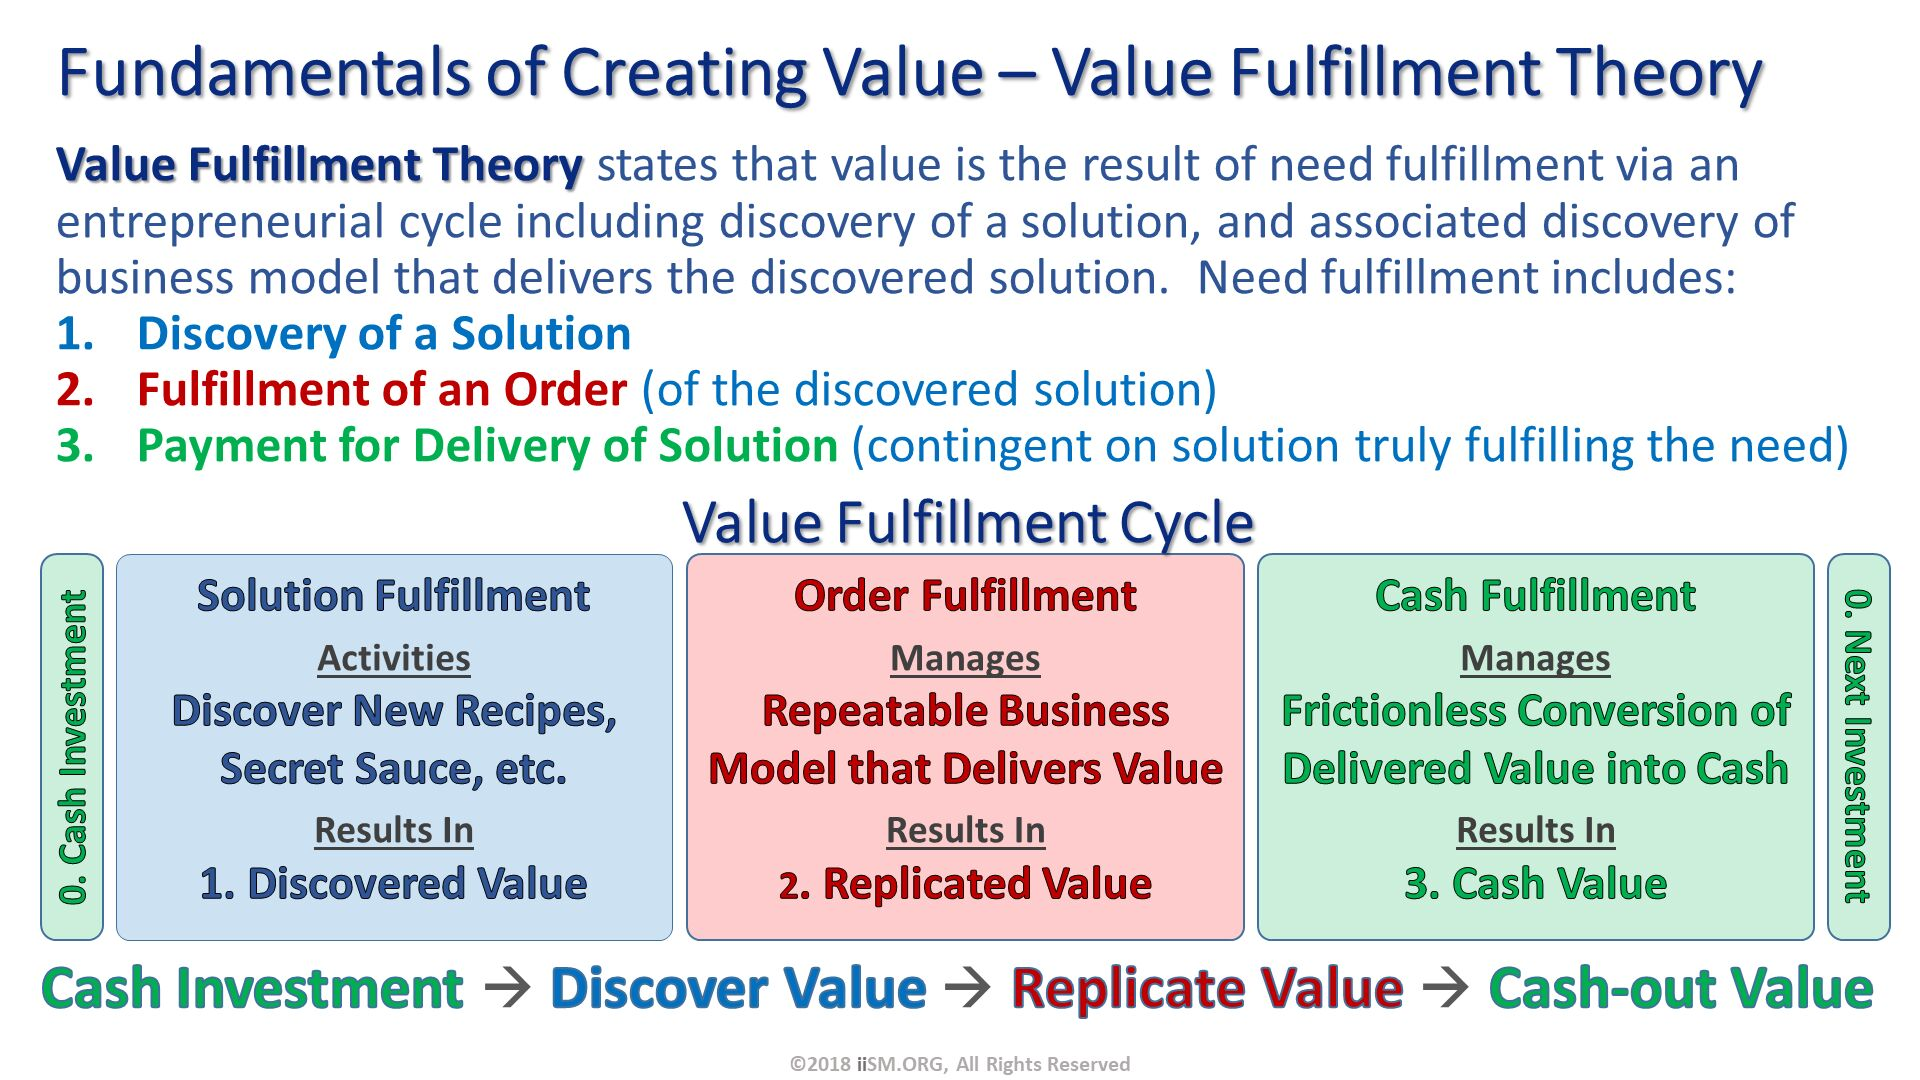 Fundamentals of Creating Value – Value Fulfillment Theory. ©2018 iiSM.ORG, All Rights Reserved. Value Fulfillment Theory states that value is the result of need fulfillment via an entrepreneurial cycle including discovery of a solution, and associated discovery of business model that delivers the discovered solution.  Need fulfillment includes: Discovery of a Solution Fulfillment of an Order (of the discovered solution) Payment for Delivery of Solution (contingent on solution truly fulfilling the need). Cash Investment  Discover Value  Replicate Value  Cash-out Value. Value Fulfillment Cycle.